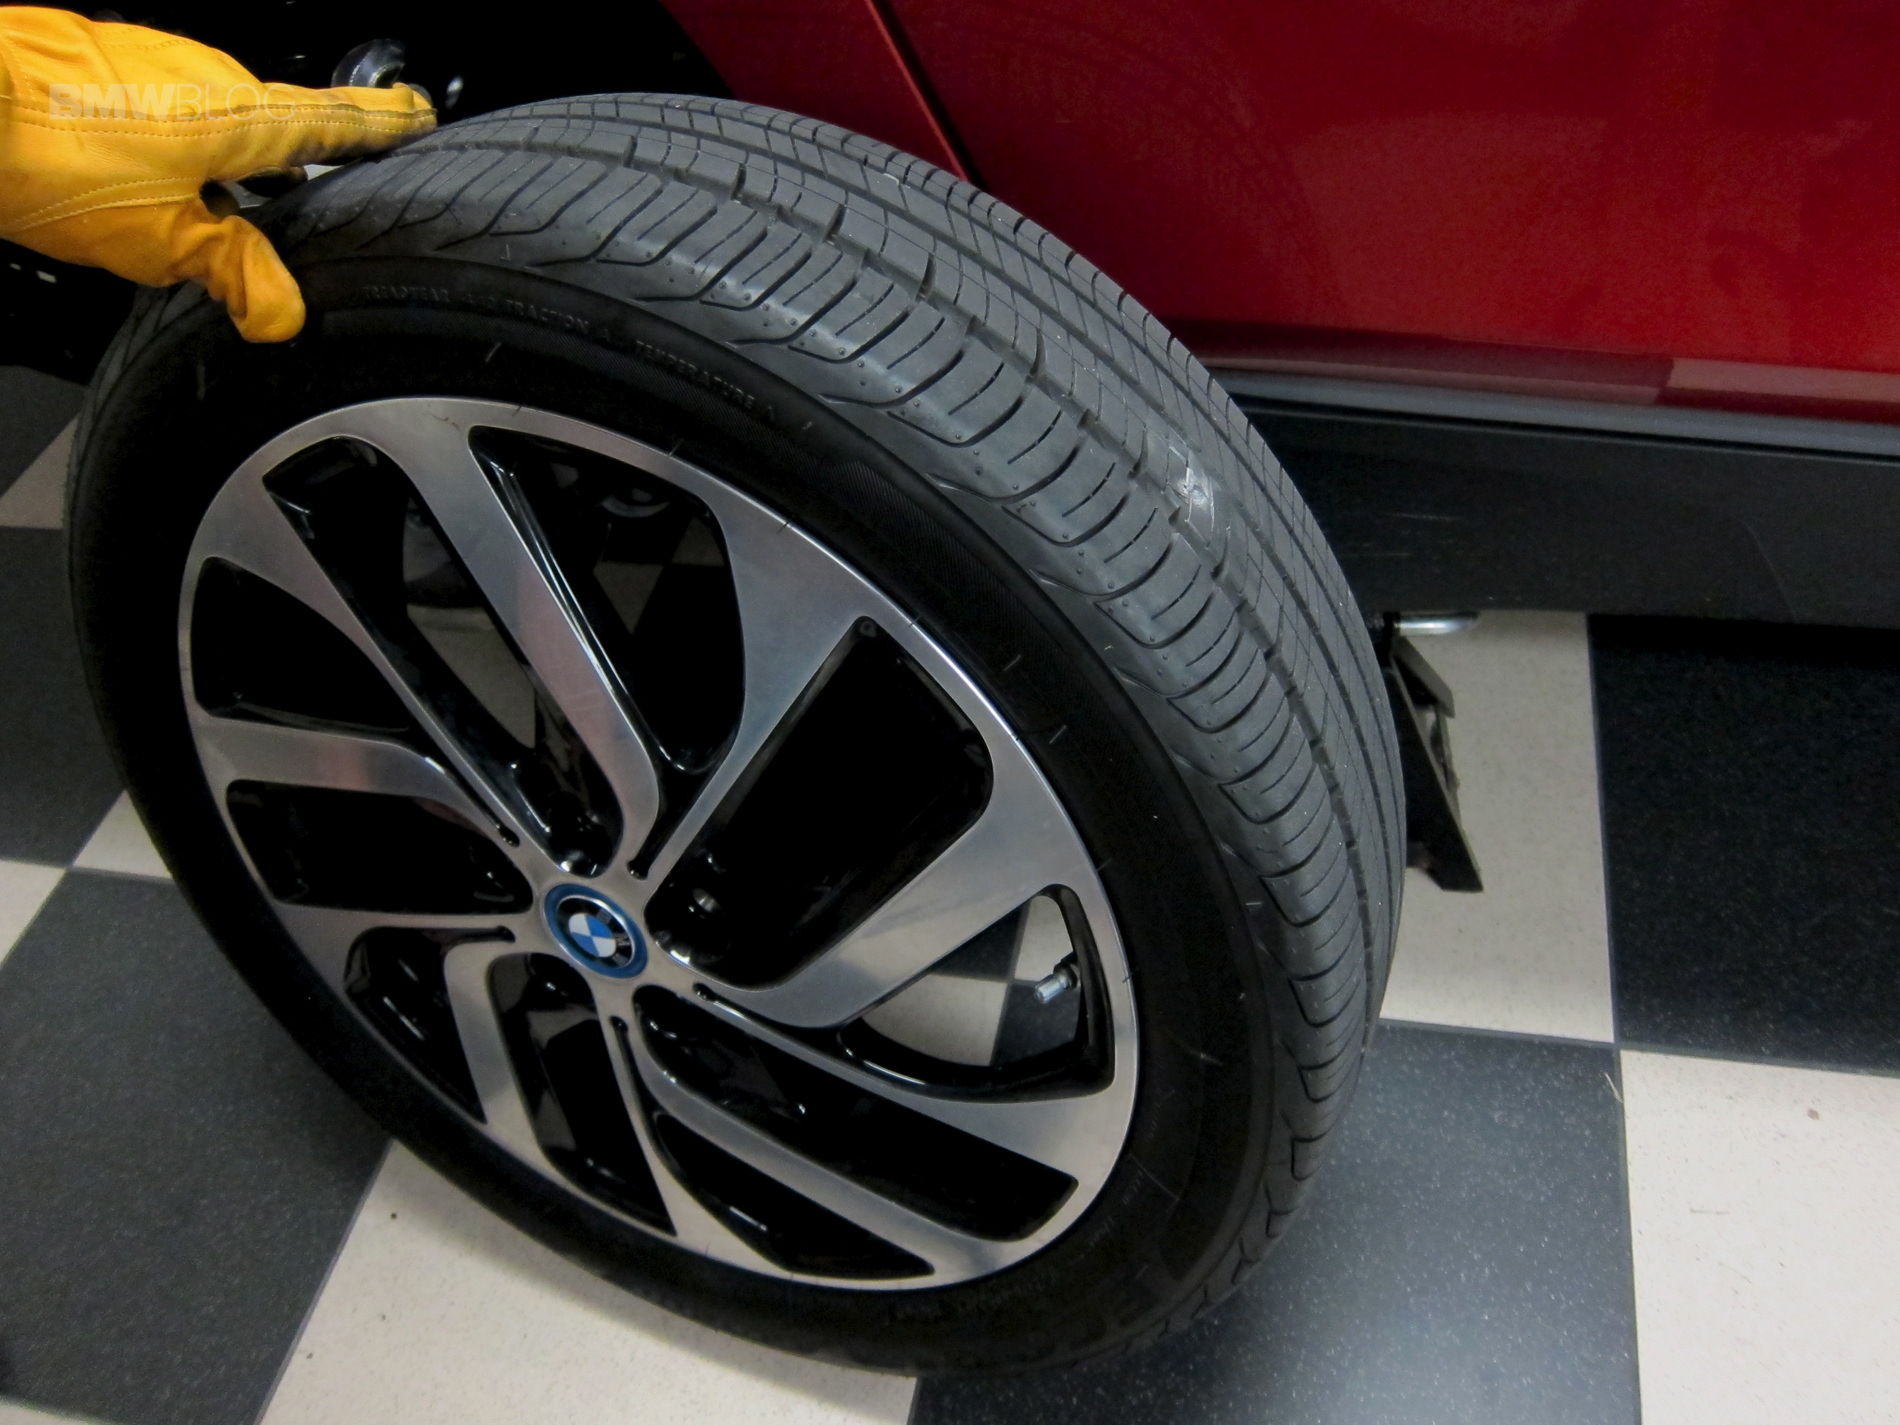 Flat Tire On Bmw I3 Tpms Comes To Rescue